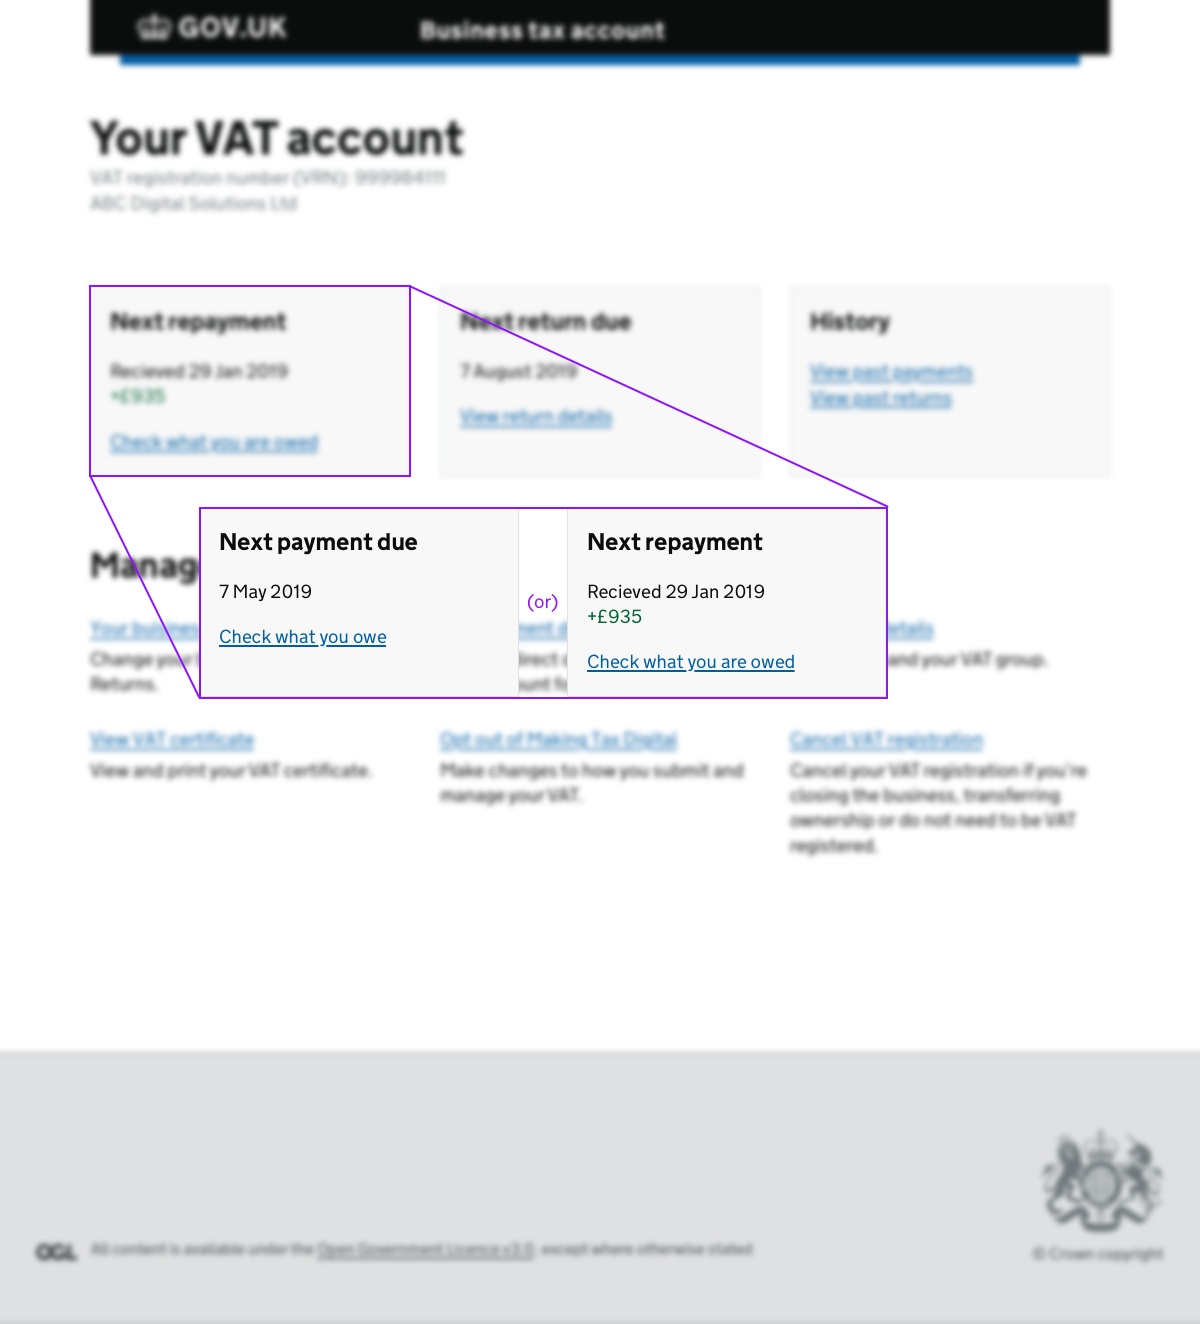 A concept where repayment are shown in place of payment due on the VAT account dashboard. Blending the tracker with the VAT account may have worked, but we didn't get the opportunity to test it.